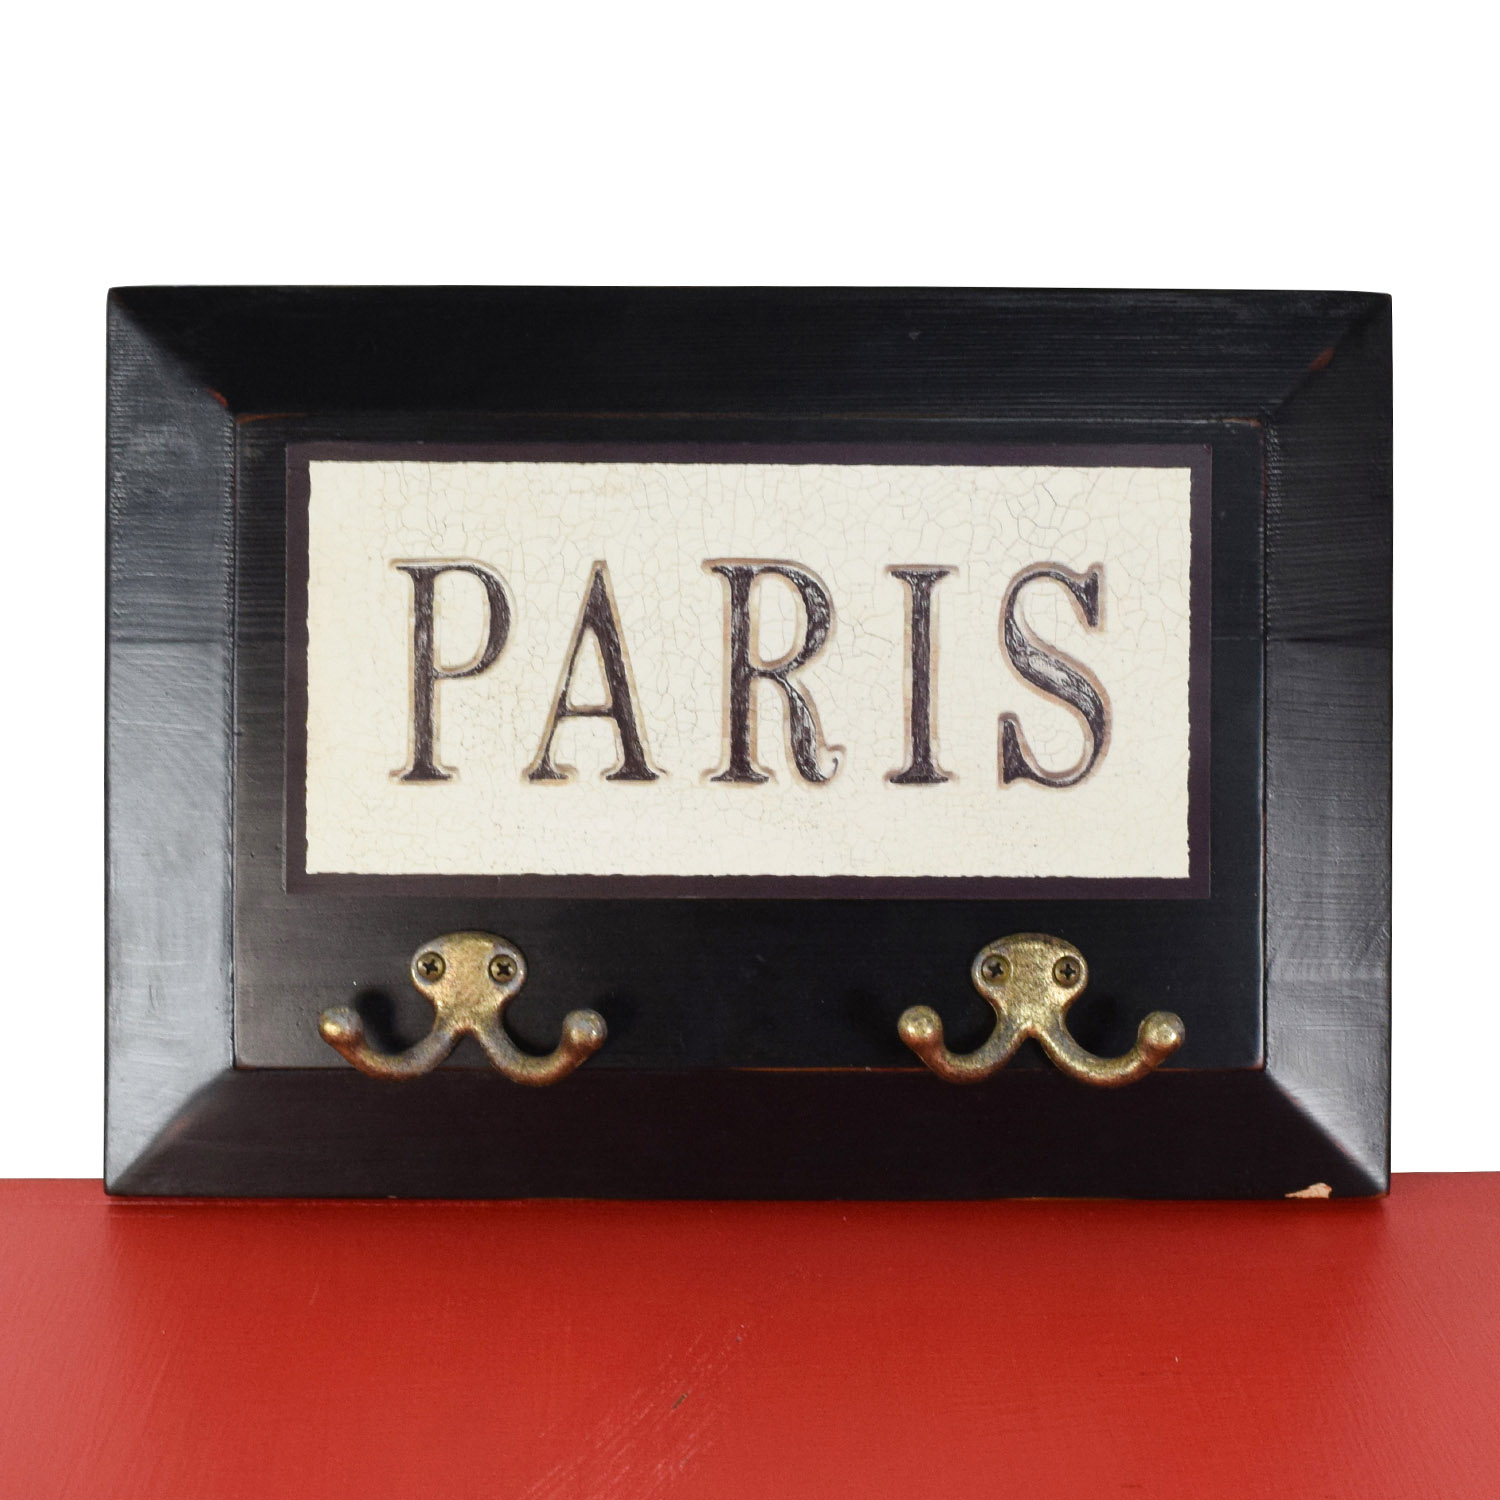 Paris Wall Hanging Coat Rack coupon